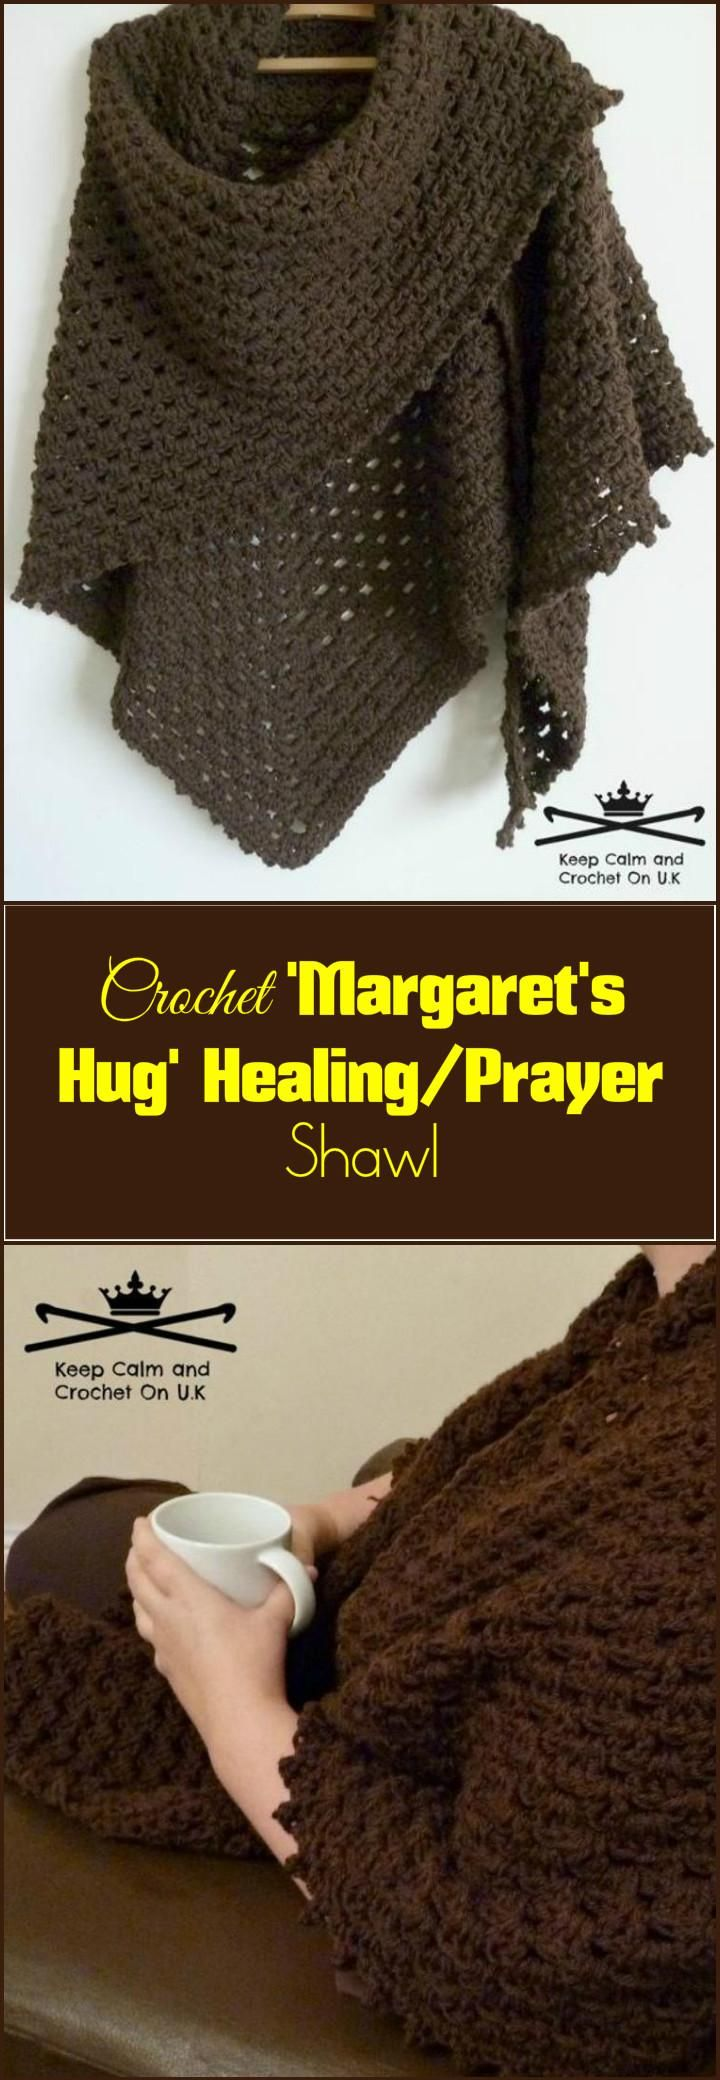 Crochet 'Margaret's Hug' HealingPrayer Shawl - 100 Free Crochet Shawl Patterns - Free Crochet Patterns - Page 2 of 19 - DIY & Crafts